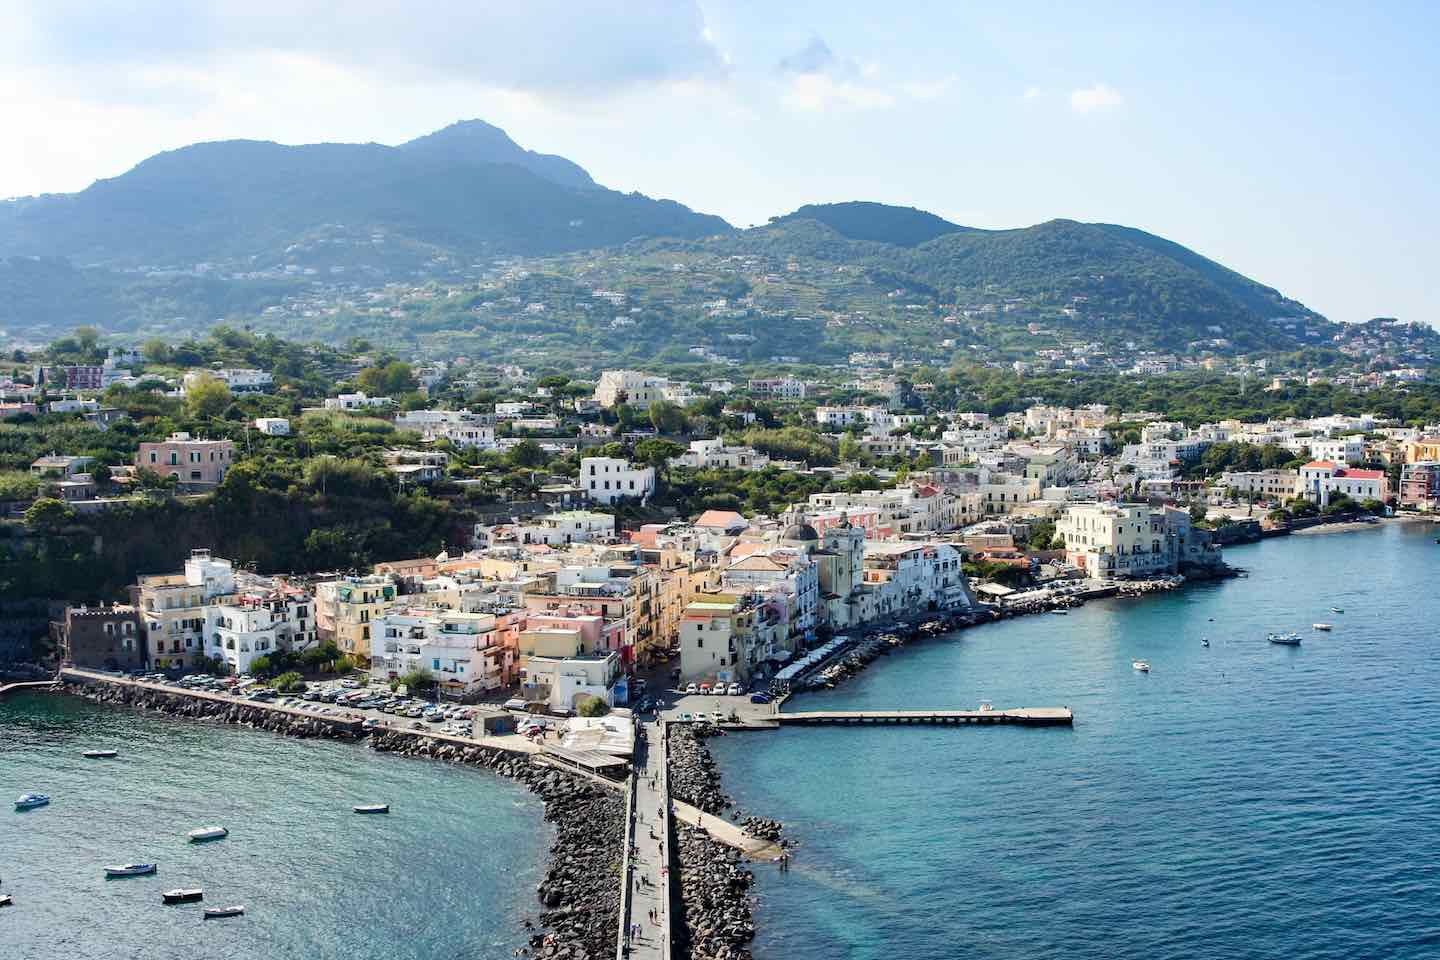 View from Ischia's historic Aragonese Castle | Image © ExpatAlli